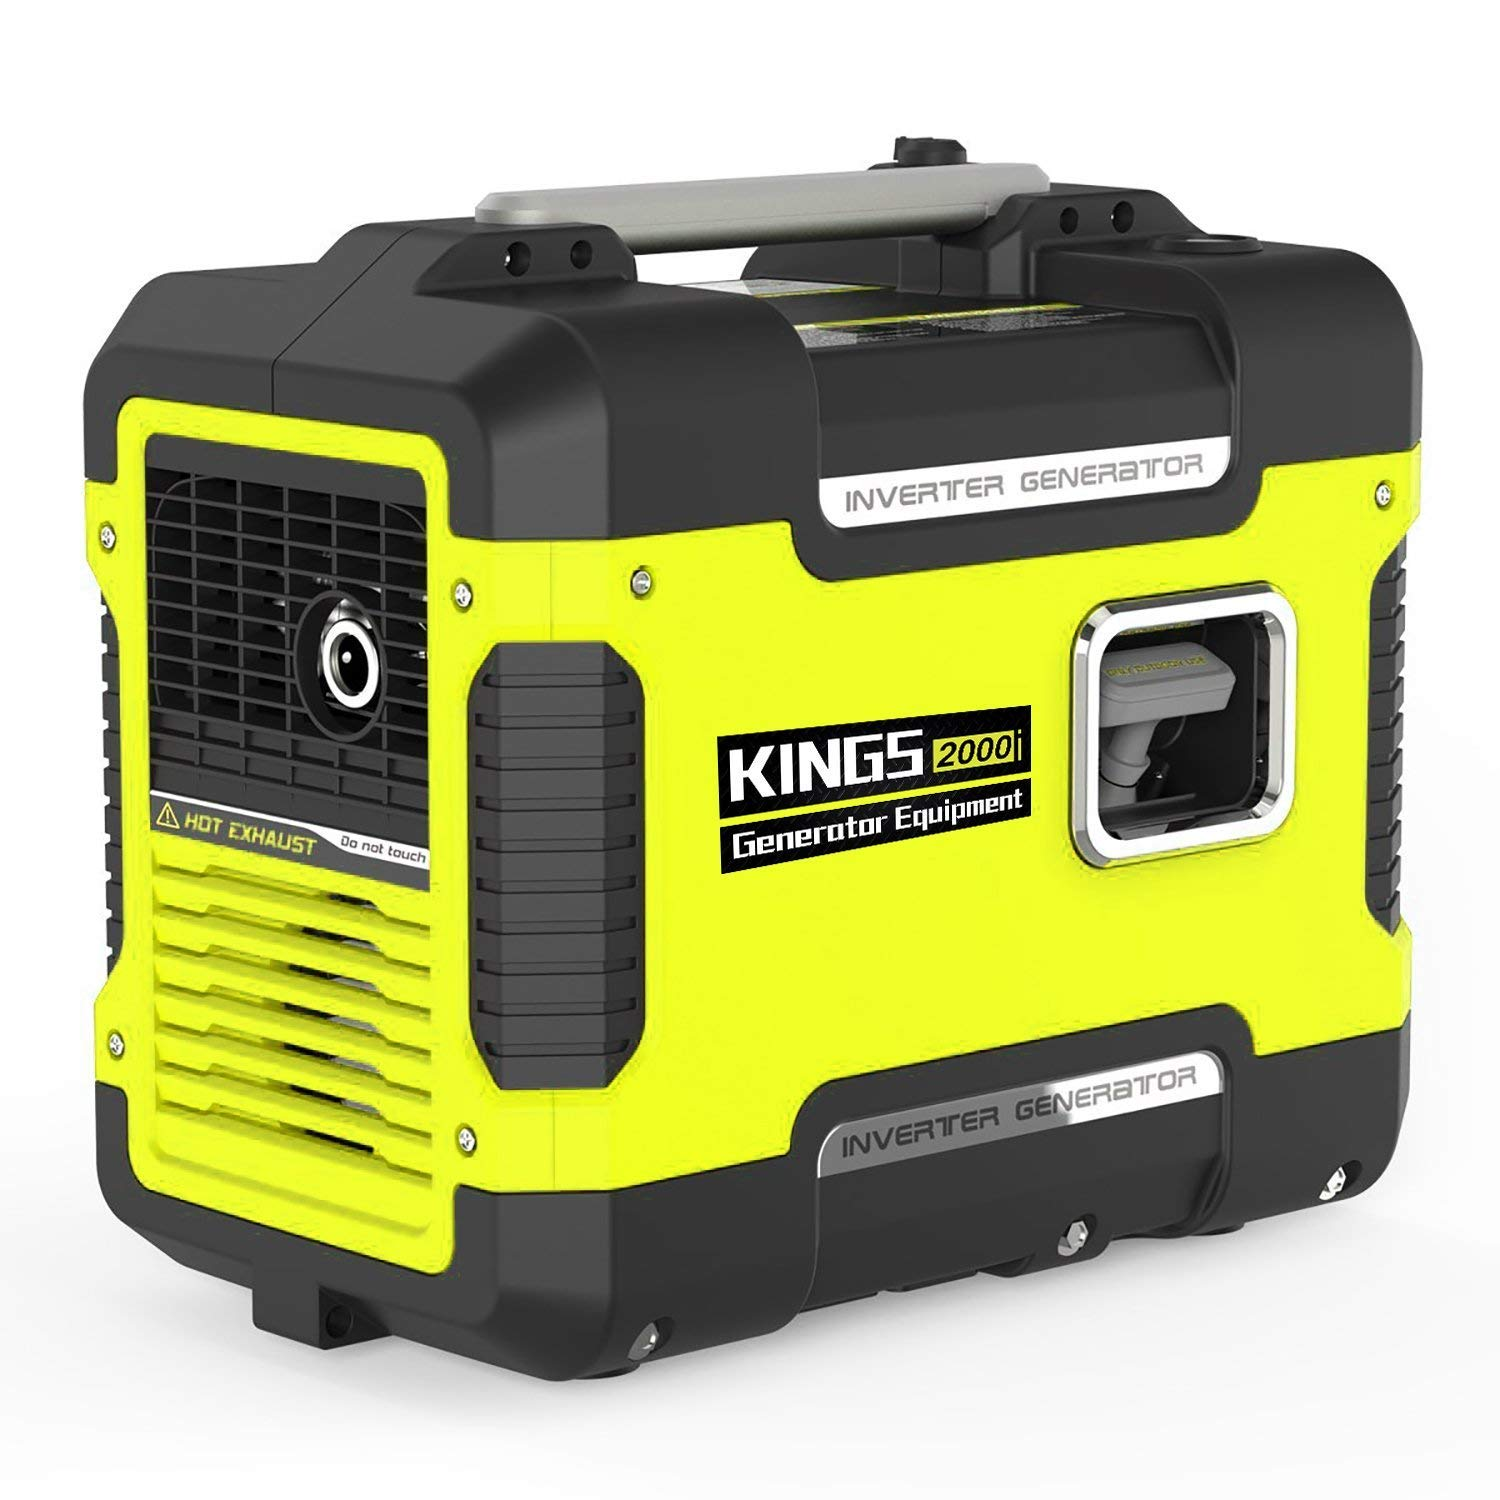 Kings Inverter Generator Portable 2000 W,Ultra Quiet Generator Power Station With 12V DC,120 AC,Gas Power